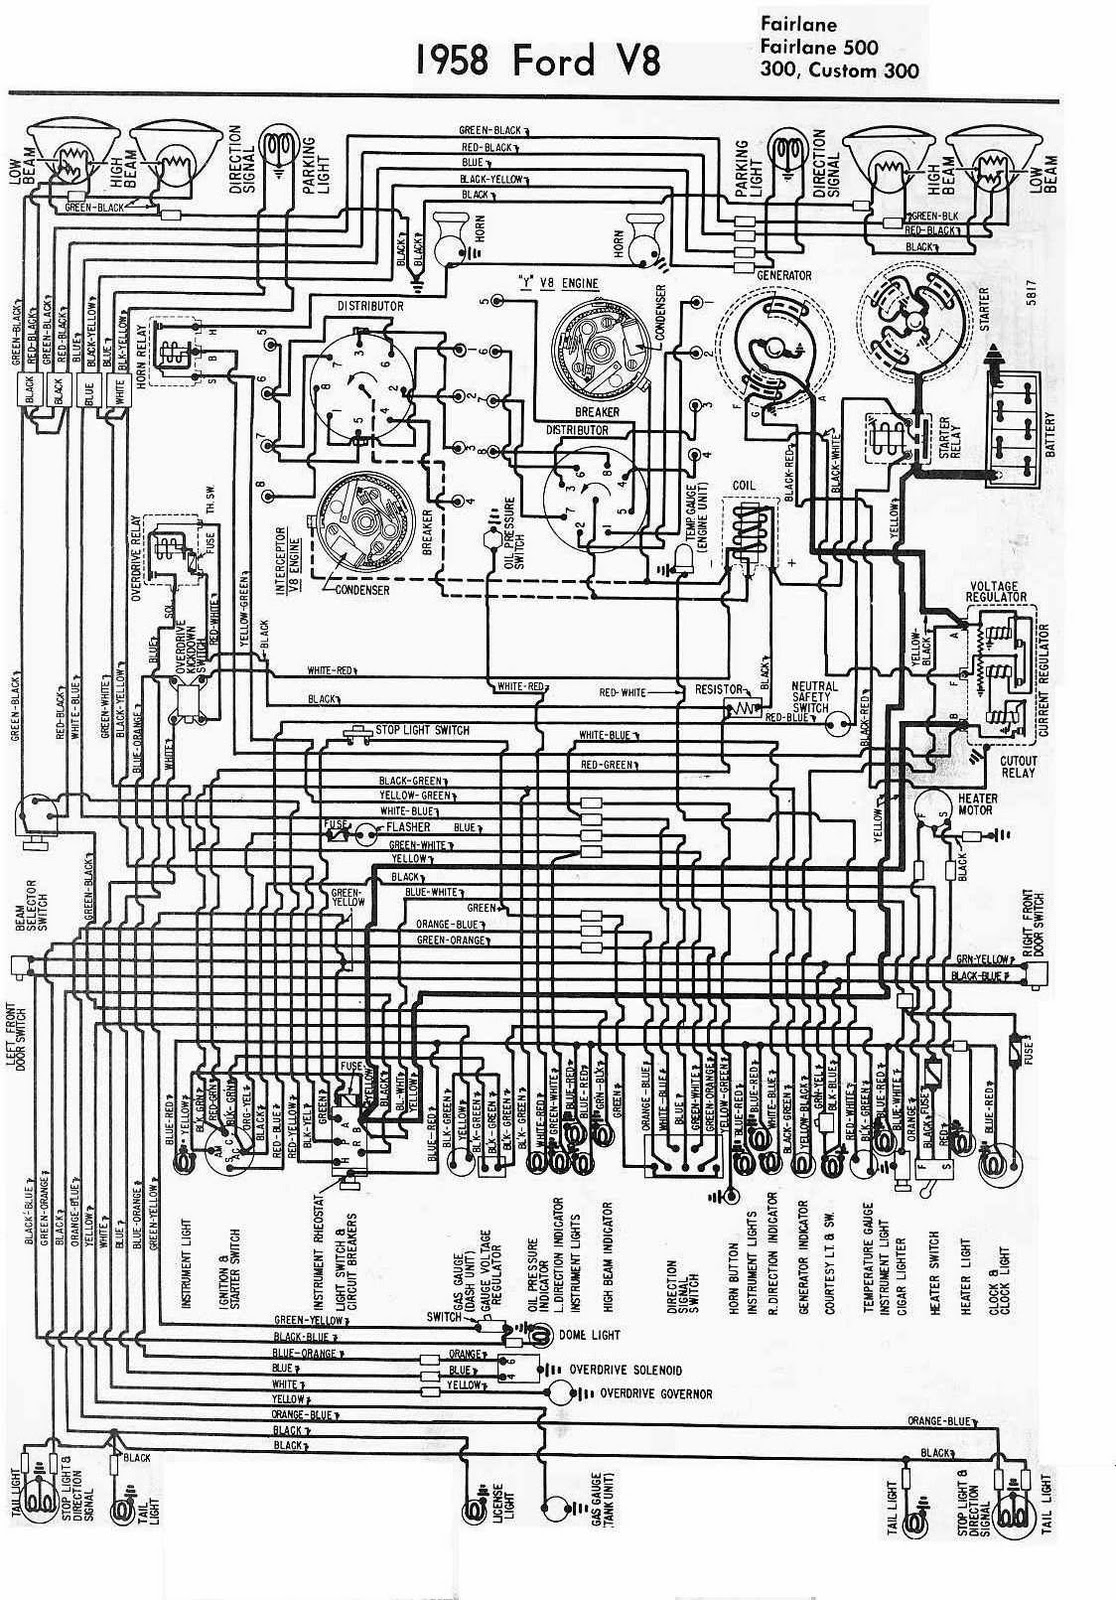 Wiring A Ford Flathead Motor Schematics Data Diagrams V8 Engine Diagram April 2011 All About Engines Info Heads